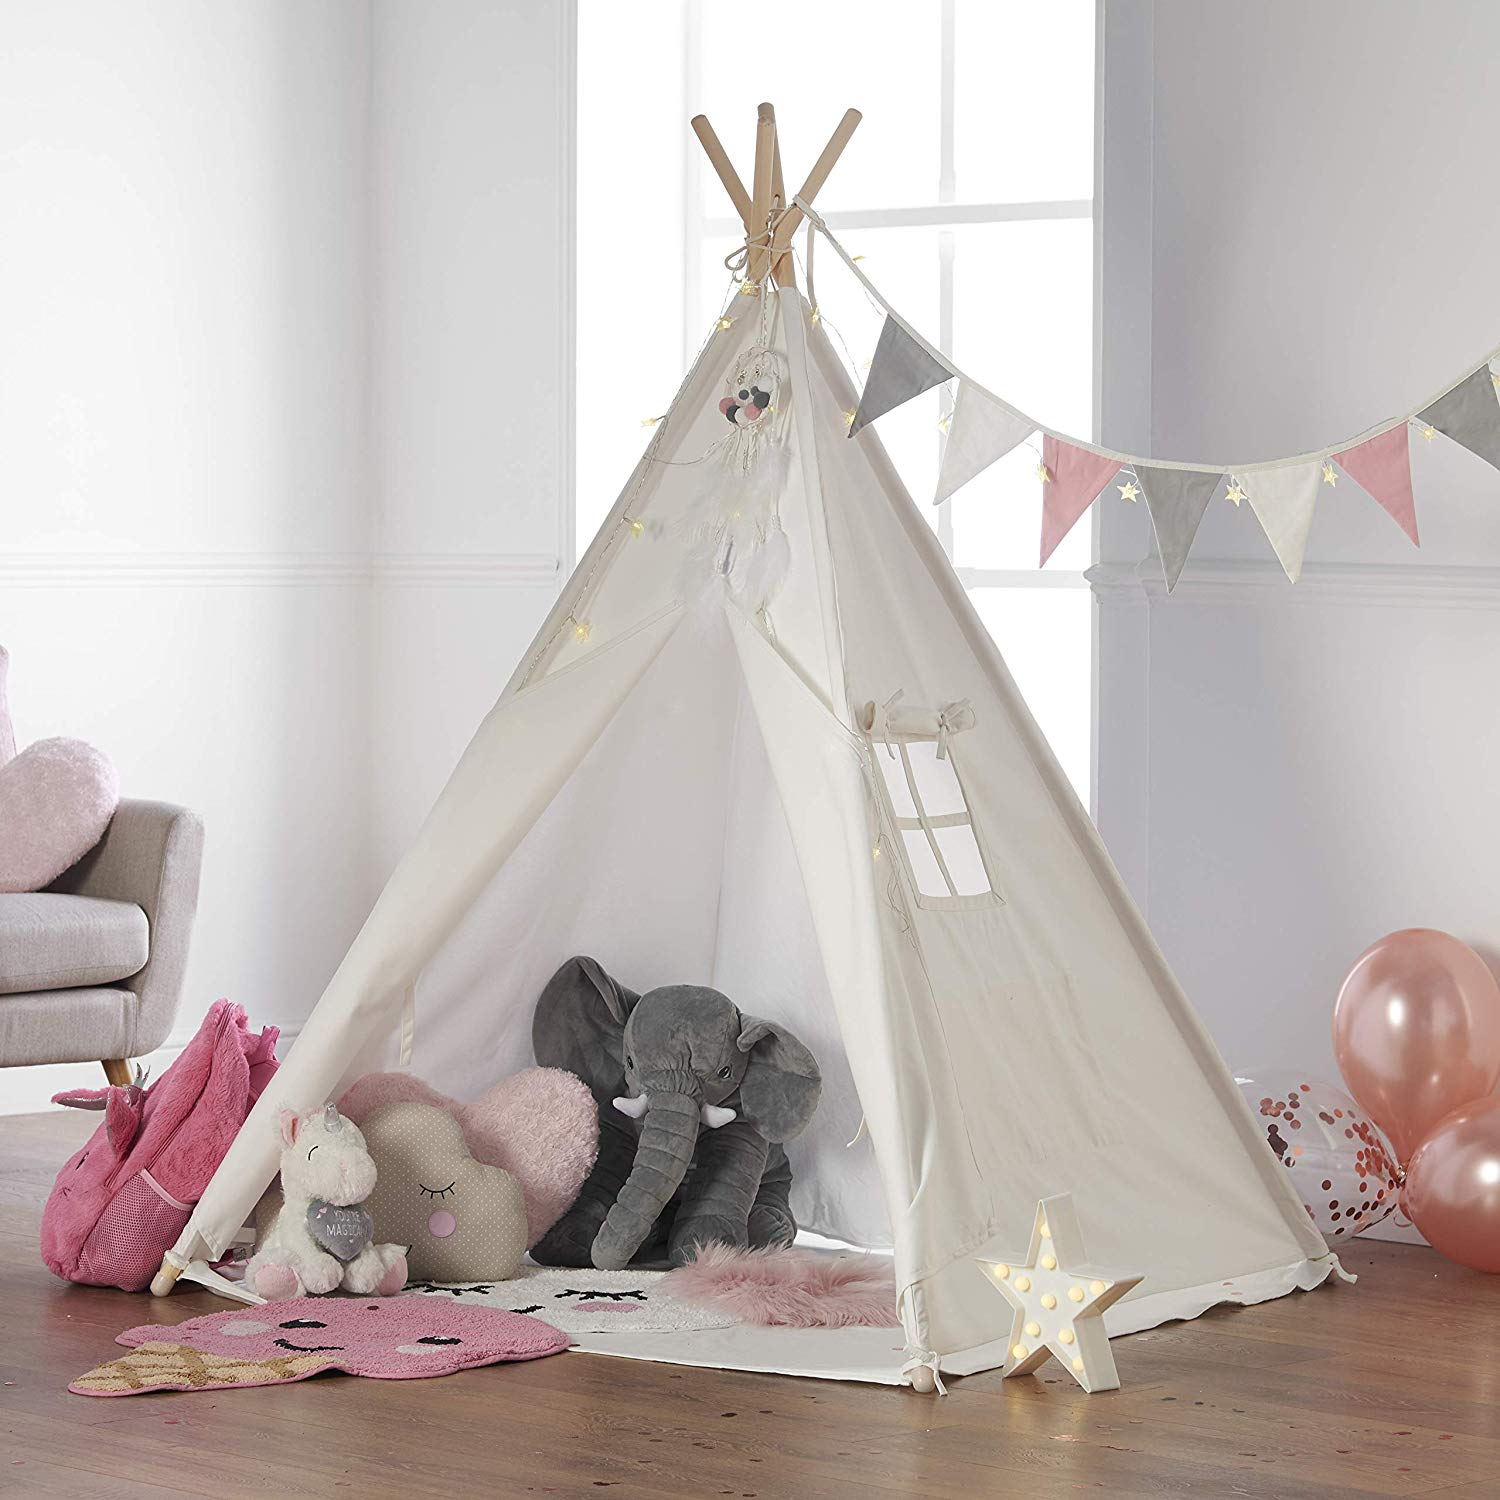 Haus Projekt Kids TeePee (Pink Bunting) with Fairy Lights, Bunting & Free Waterproof Base 160cm Tipi Tent